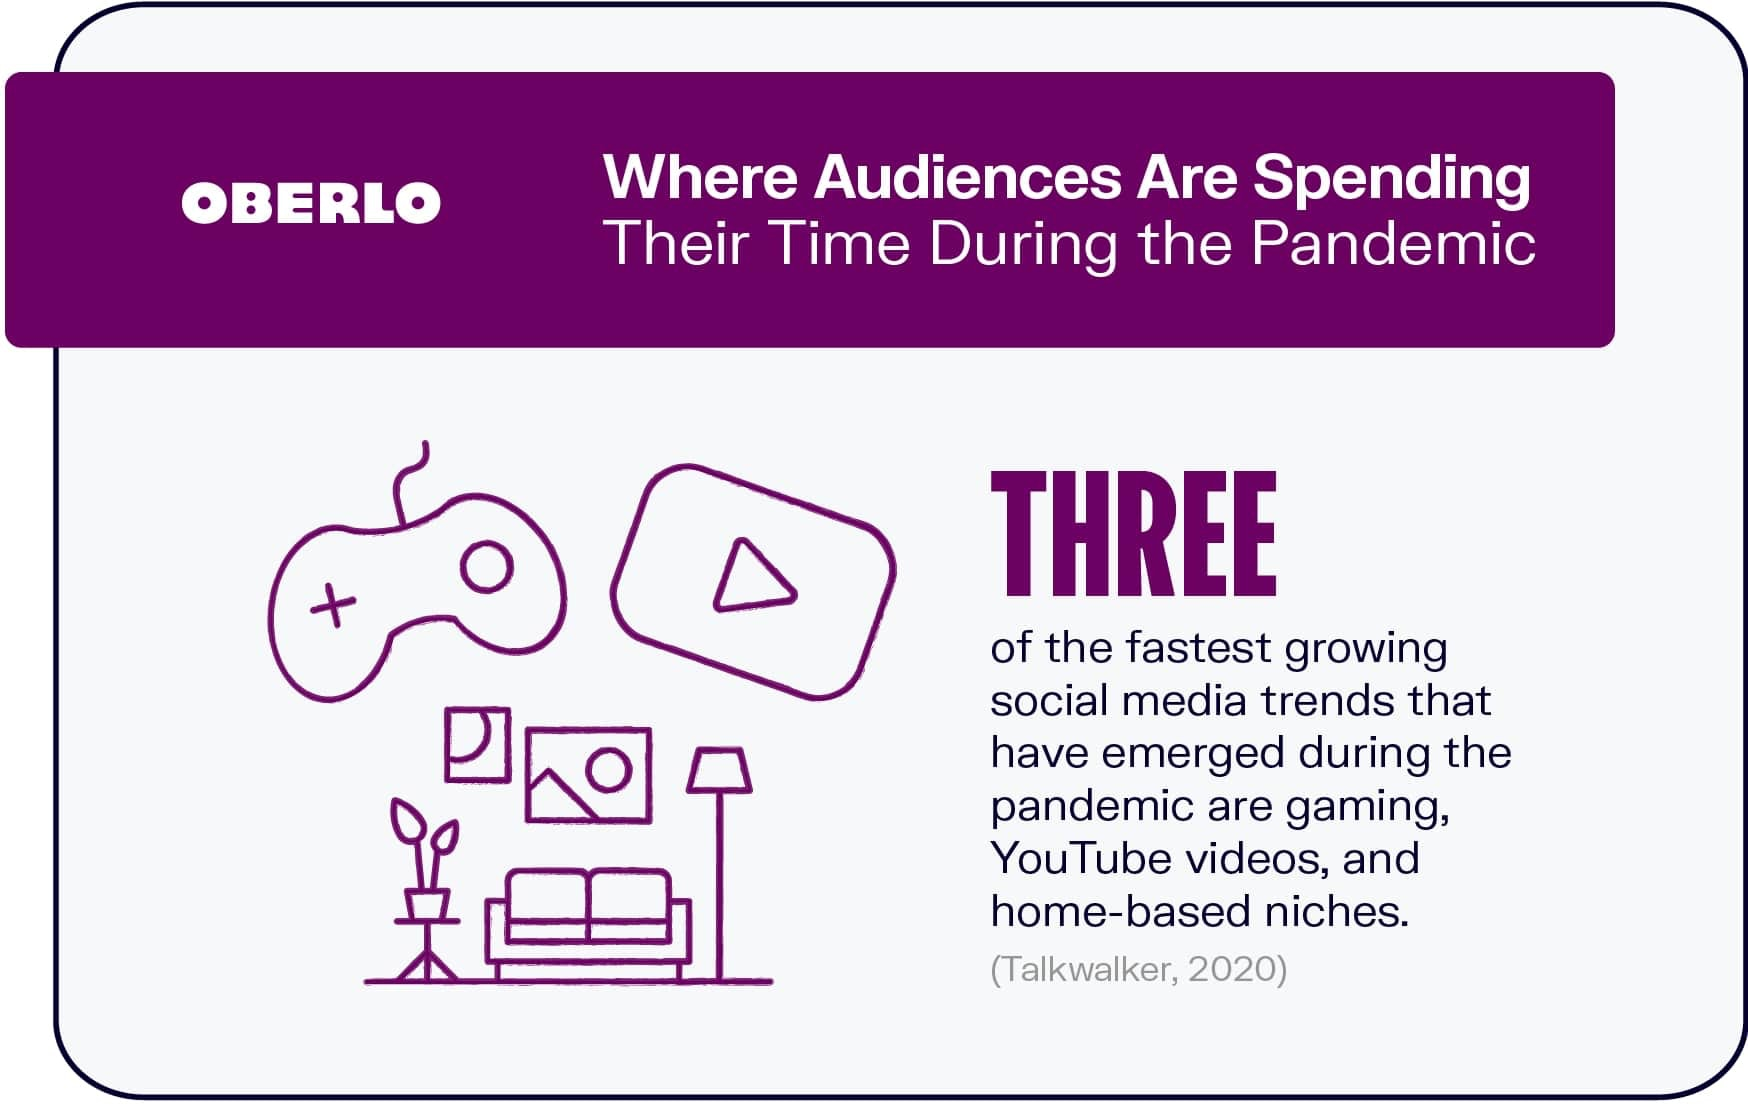 Where Audiences Are Spending Their Time During the Pandemic